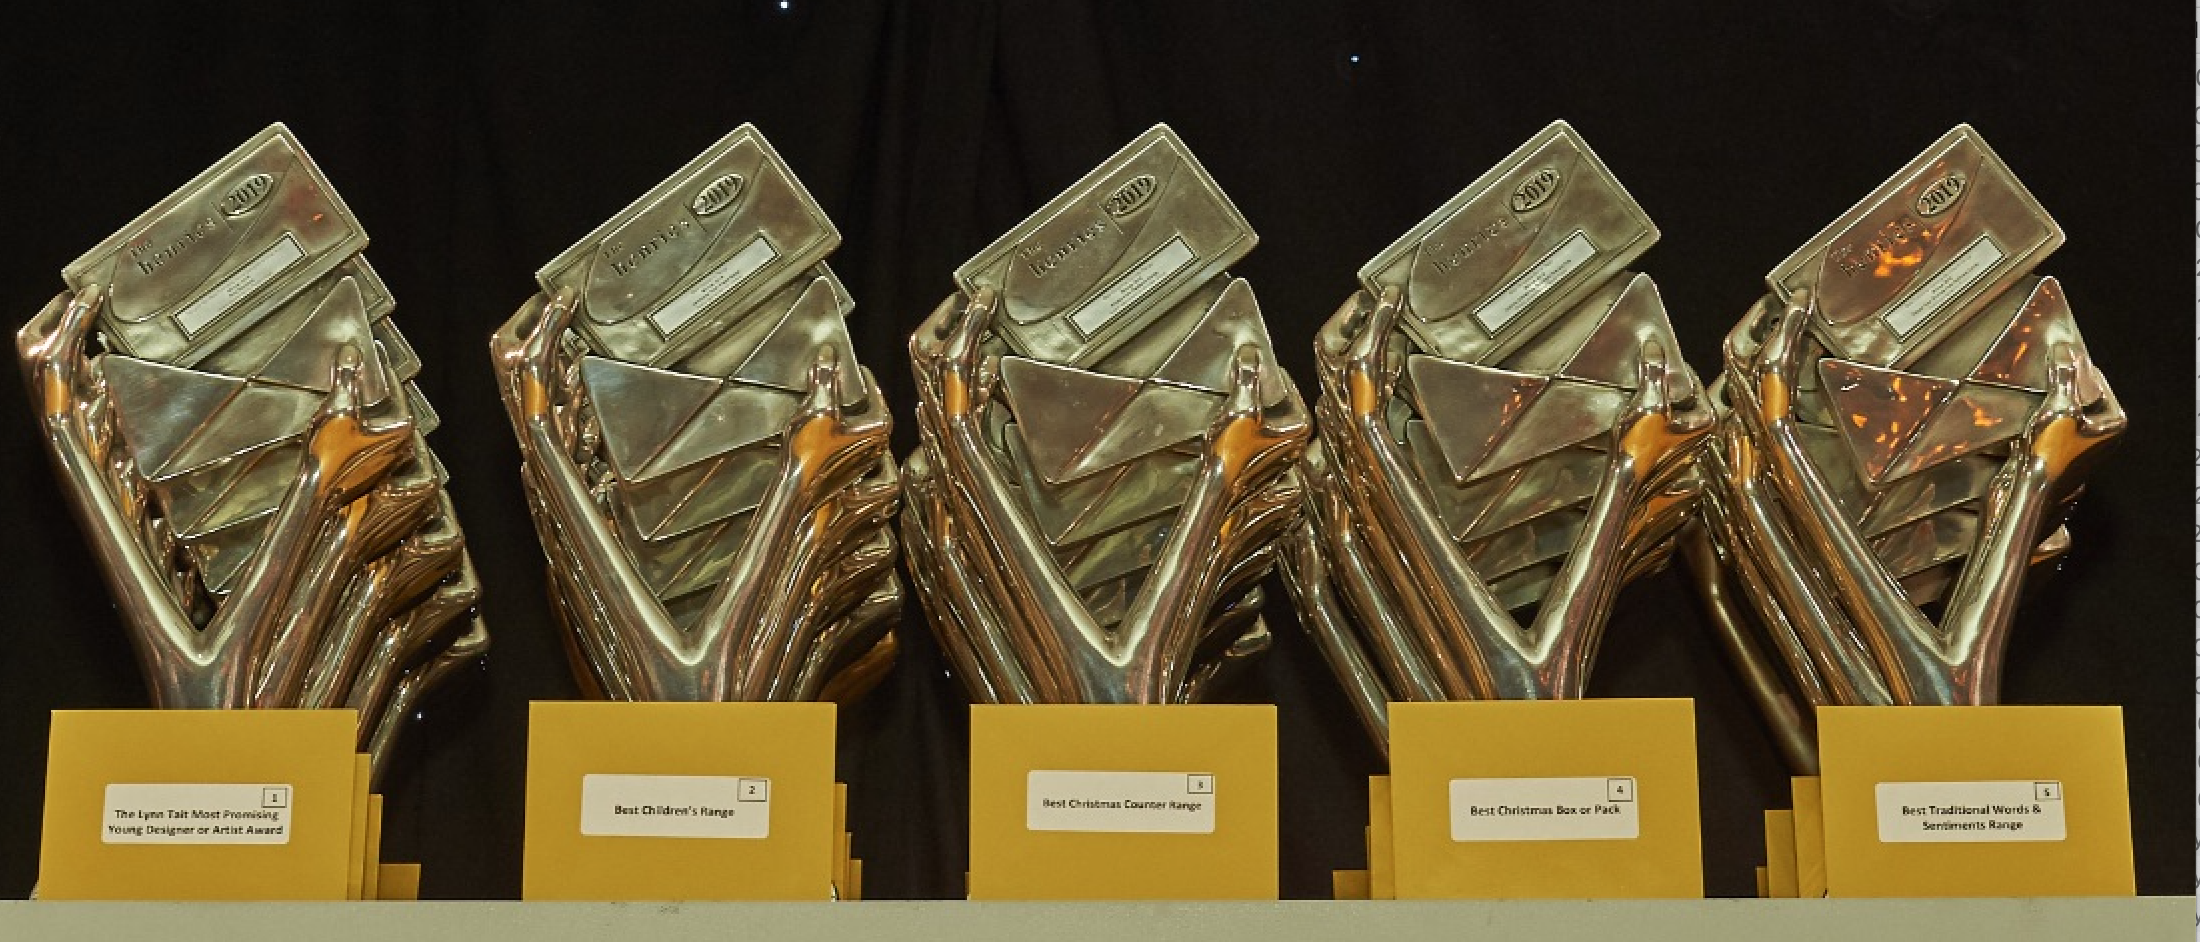 Above: There will be 'real' trophies that will be delivered to the winners soon after the awards event.